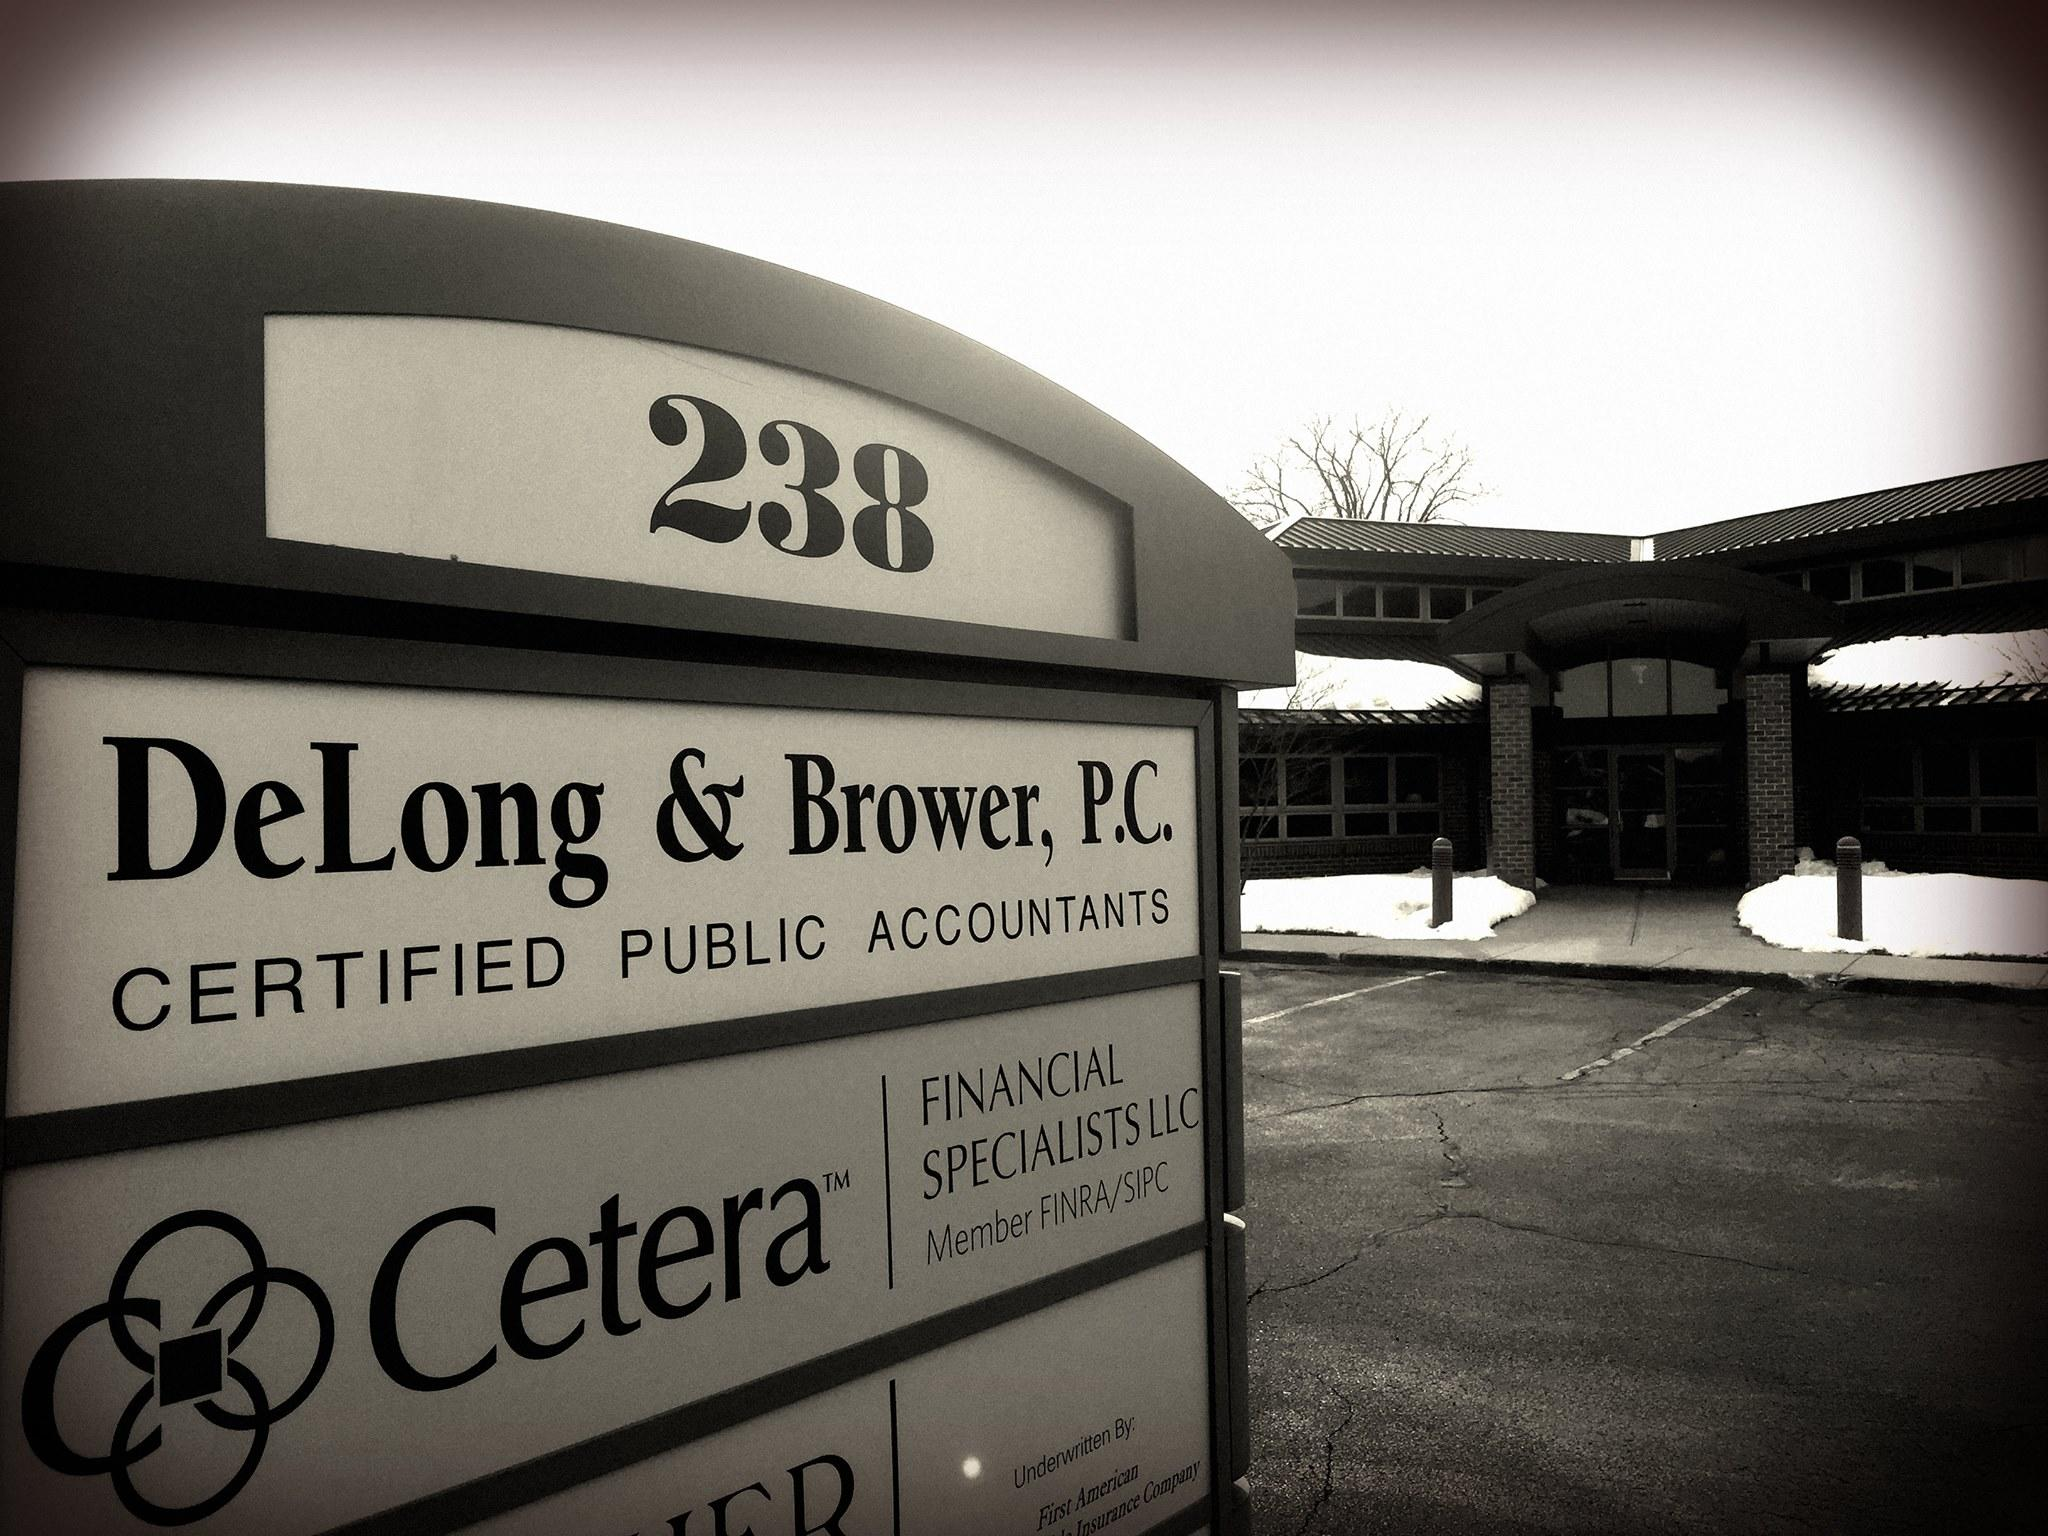 Delong & Brower Pc image 1